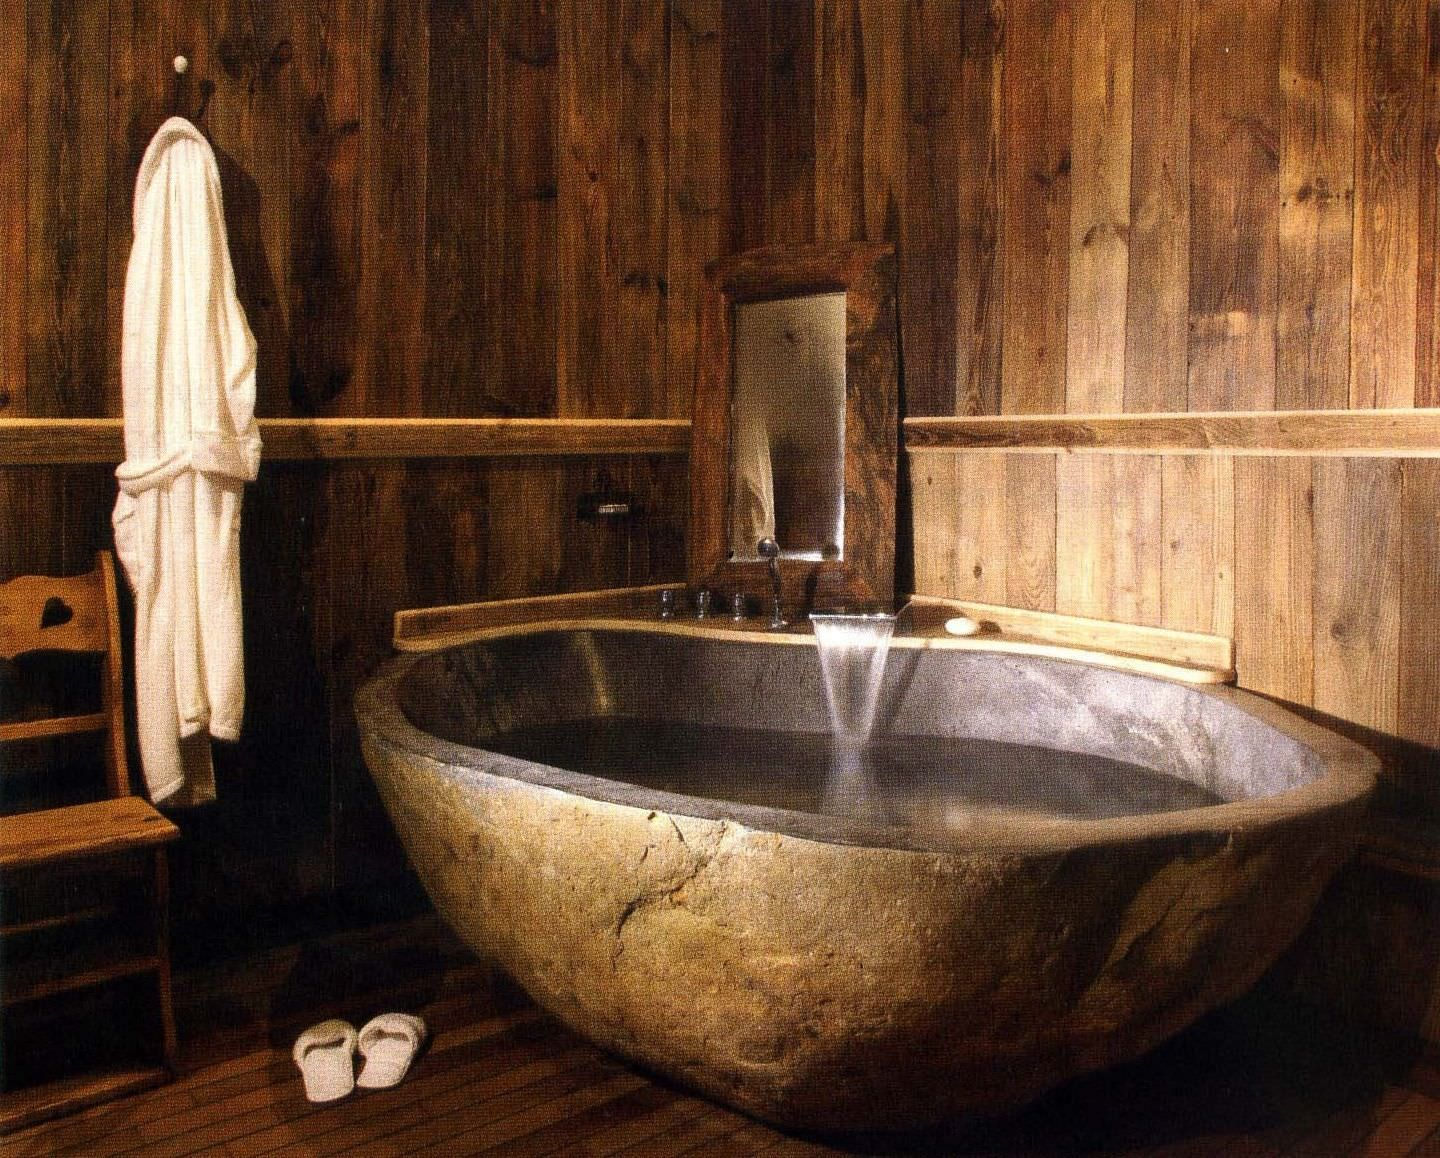 1000 images about log home interior design on pinterest log homes rustic bathroom designs and rustic - Rustic Design Ideas